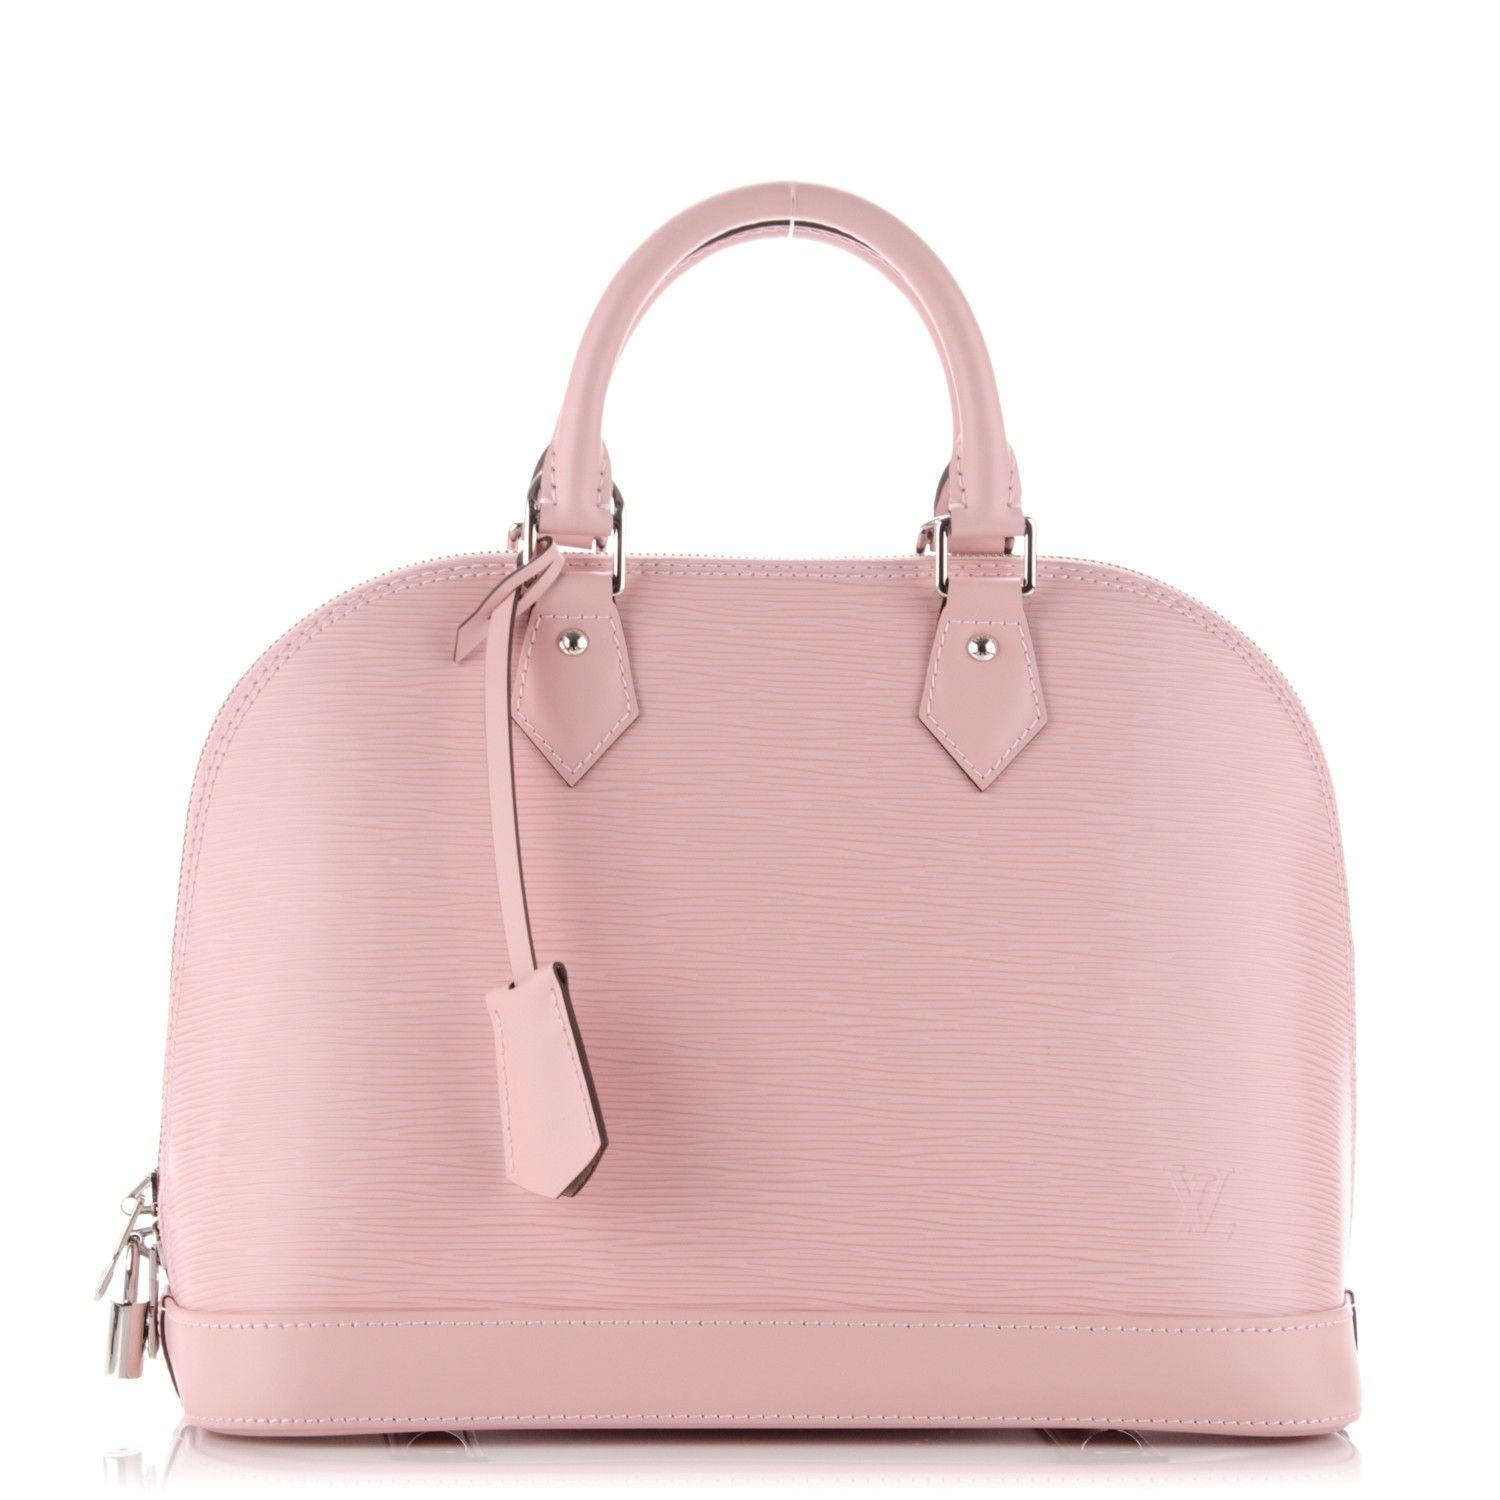 1af7d4bbddb8 This is an authentic LOUIS VUITTON Epi Alma PM in Rose Ballerine. This is a  stunning bowler style tote that is created out of Louis Vuitton signature  ...